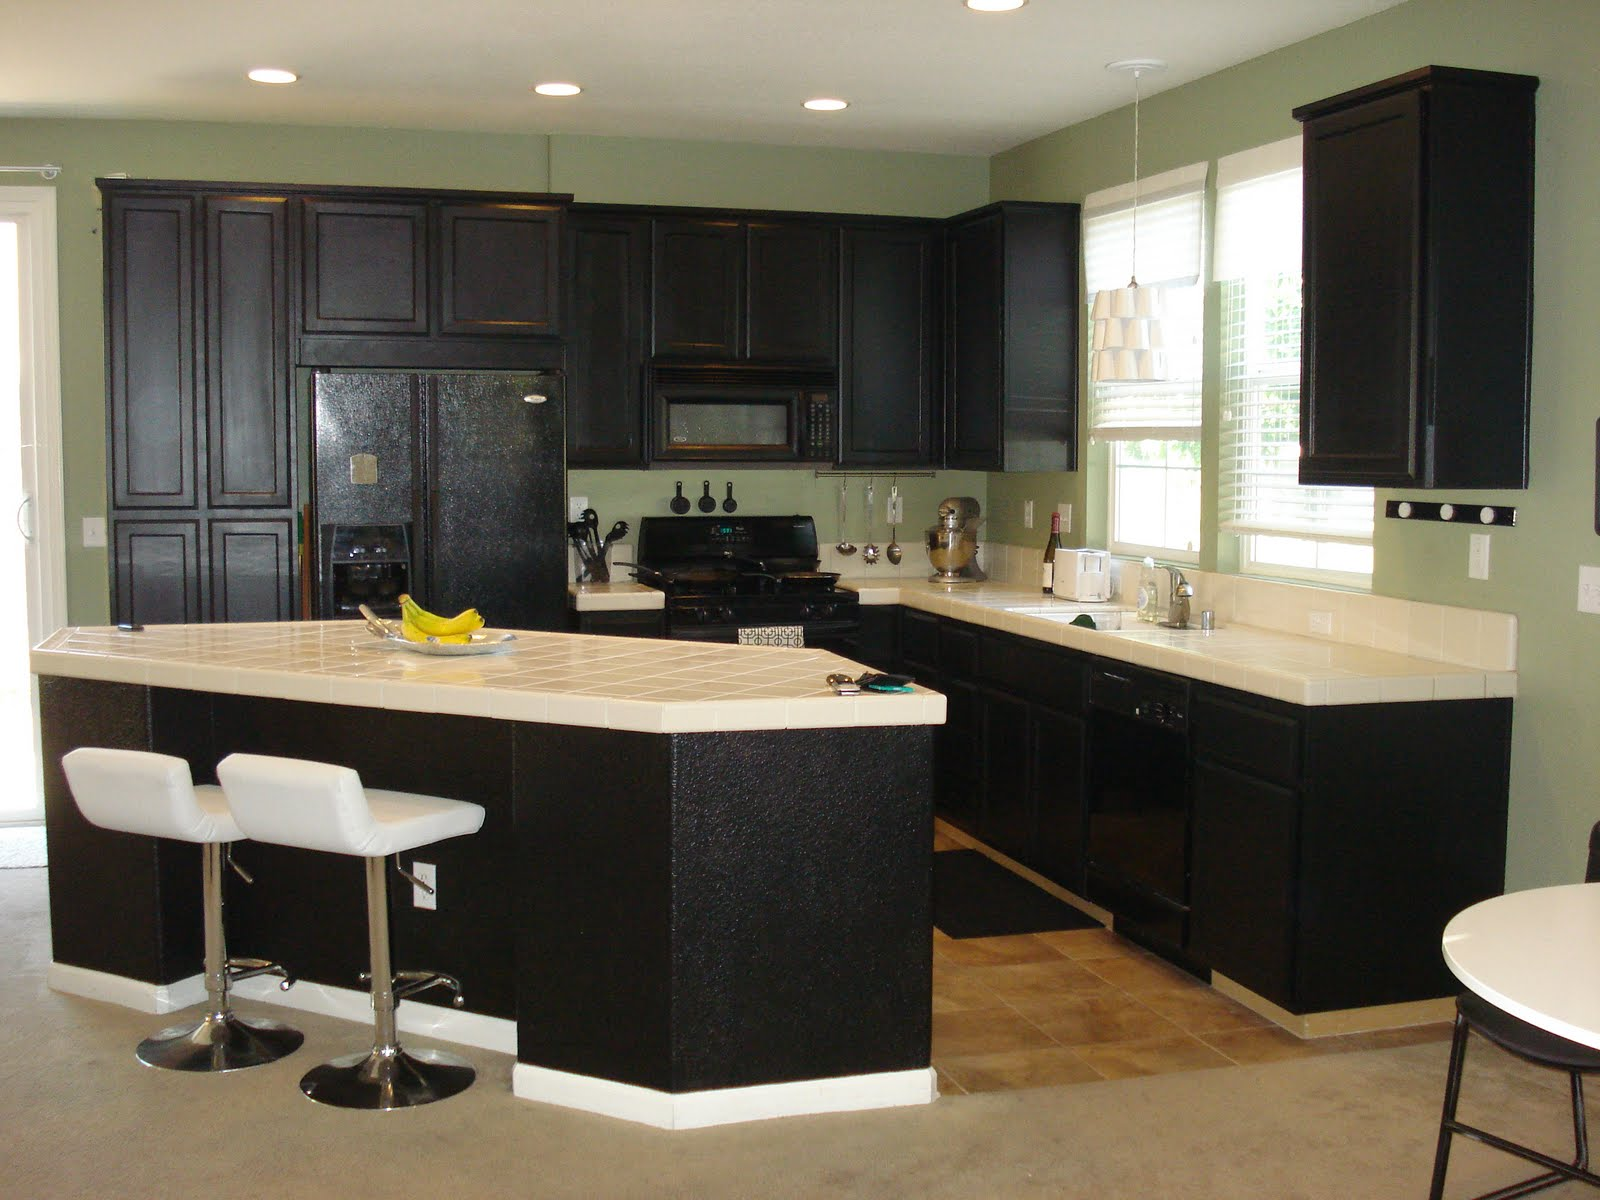 DIY Paint Kitchen Cabinets Black